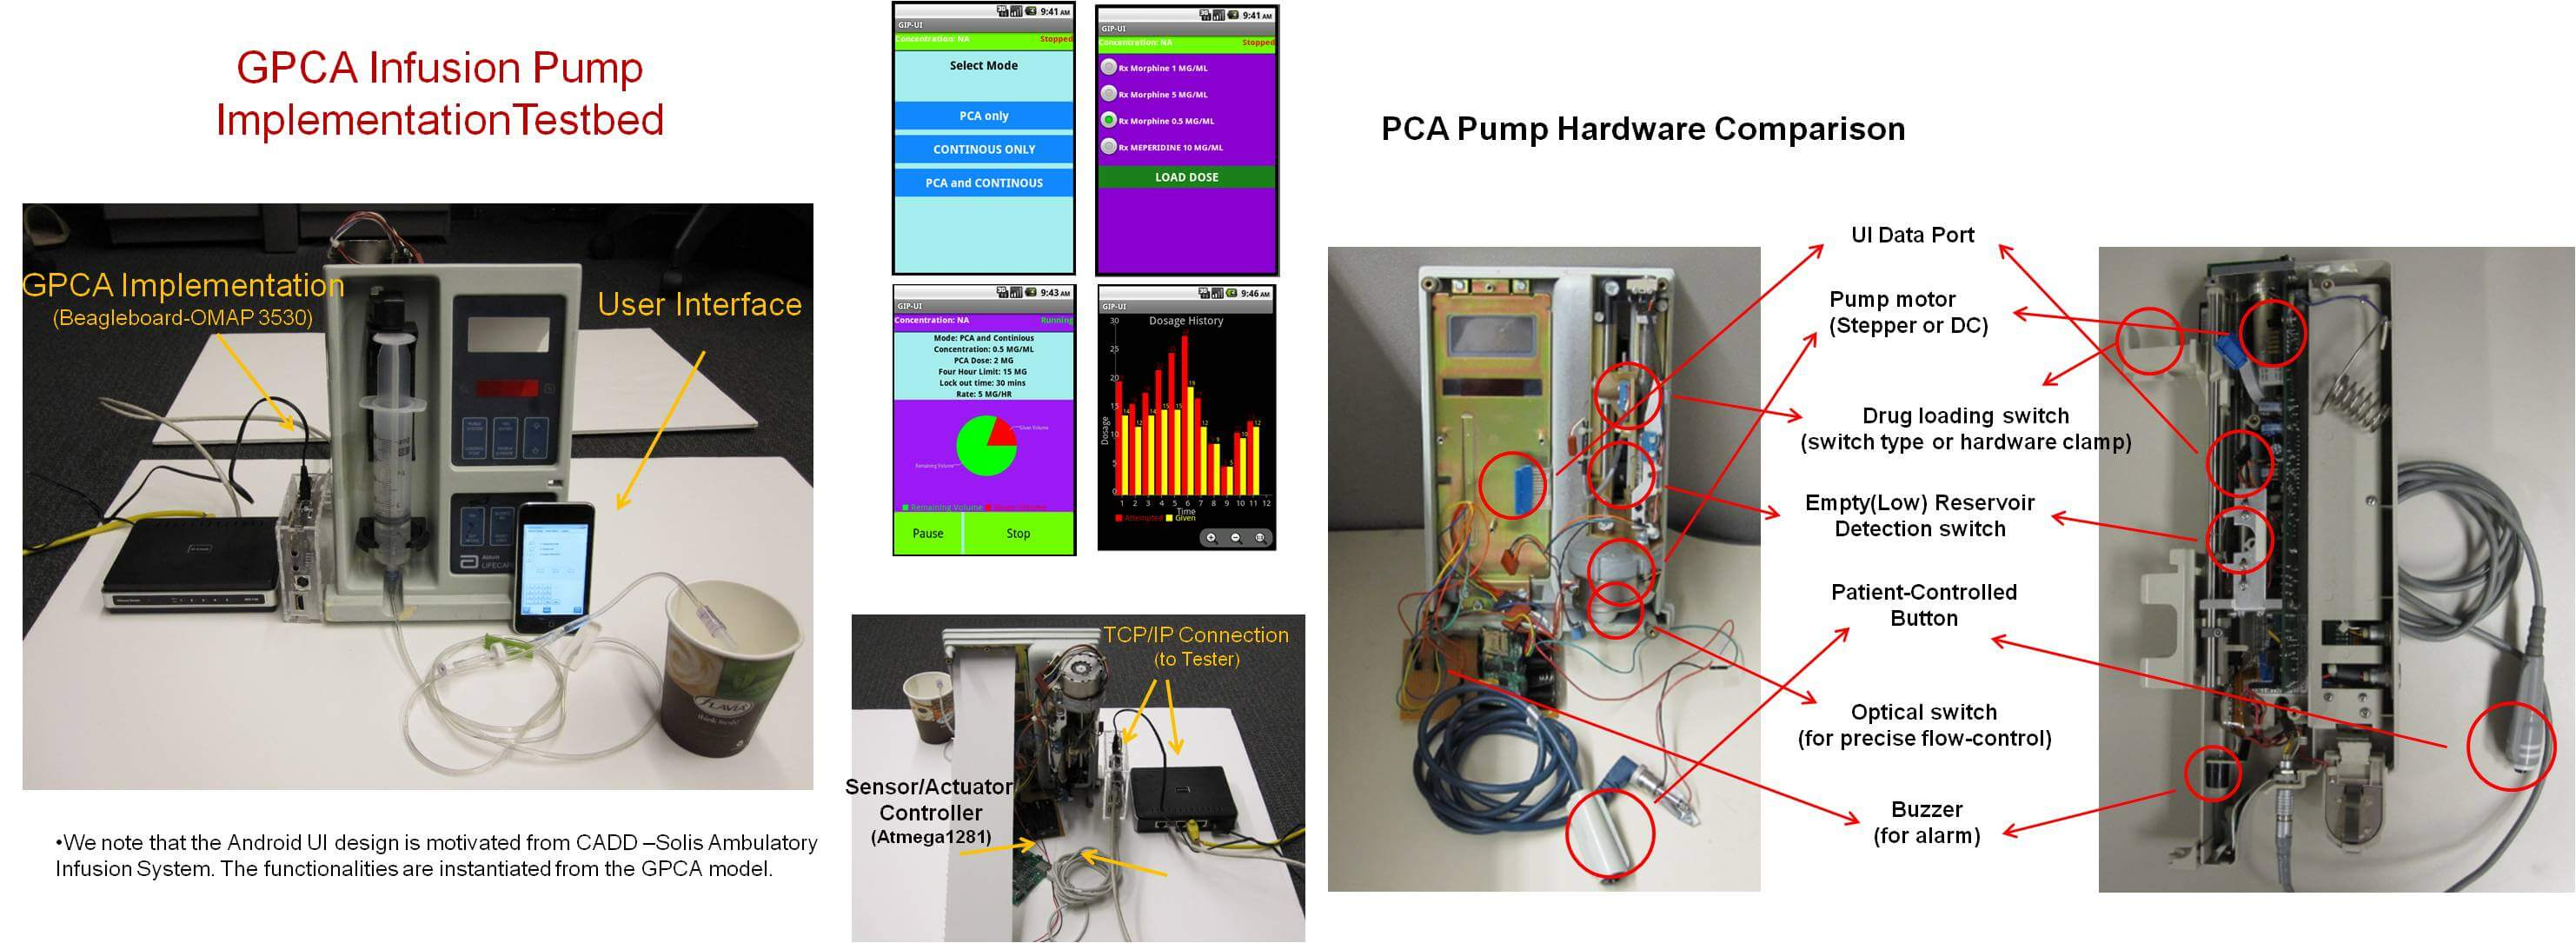 Generic PCA Infusion Pump Reference Implementation image